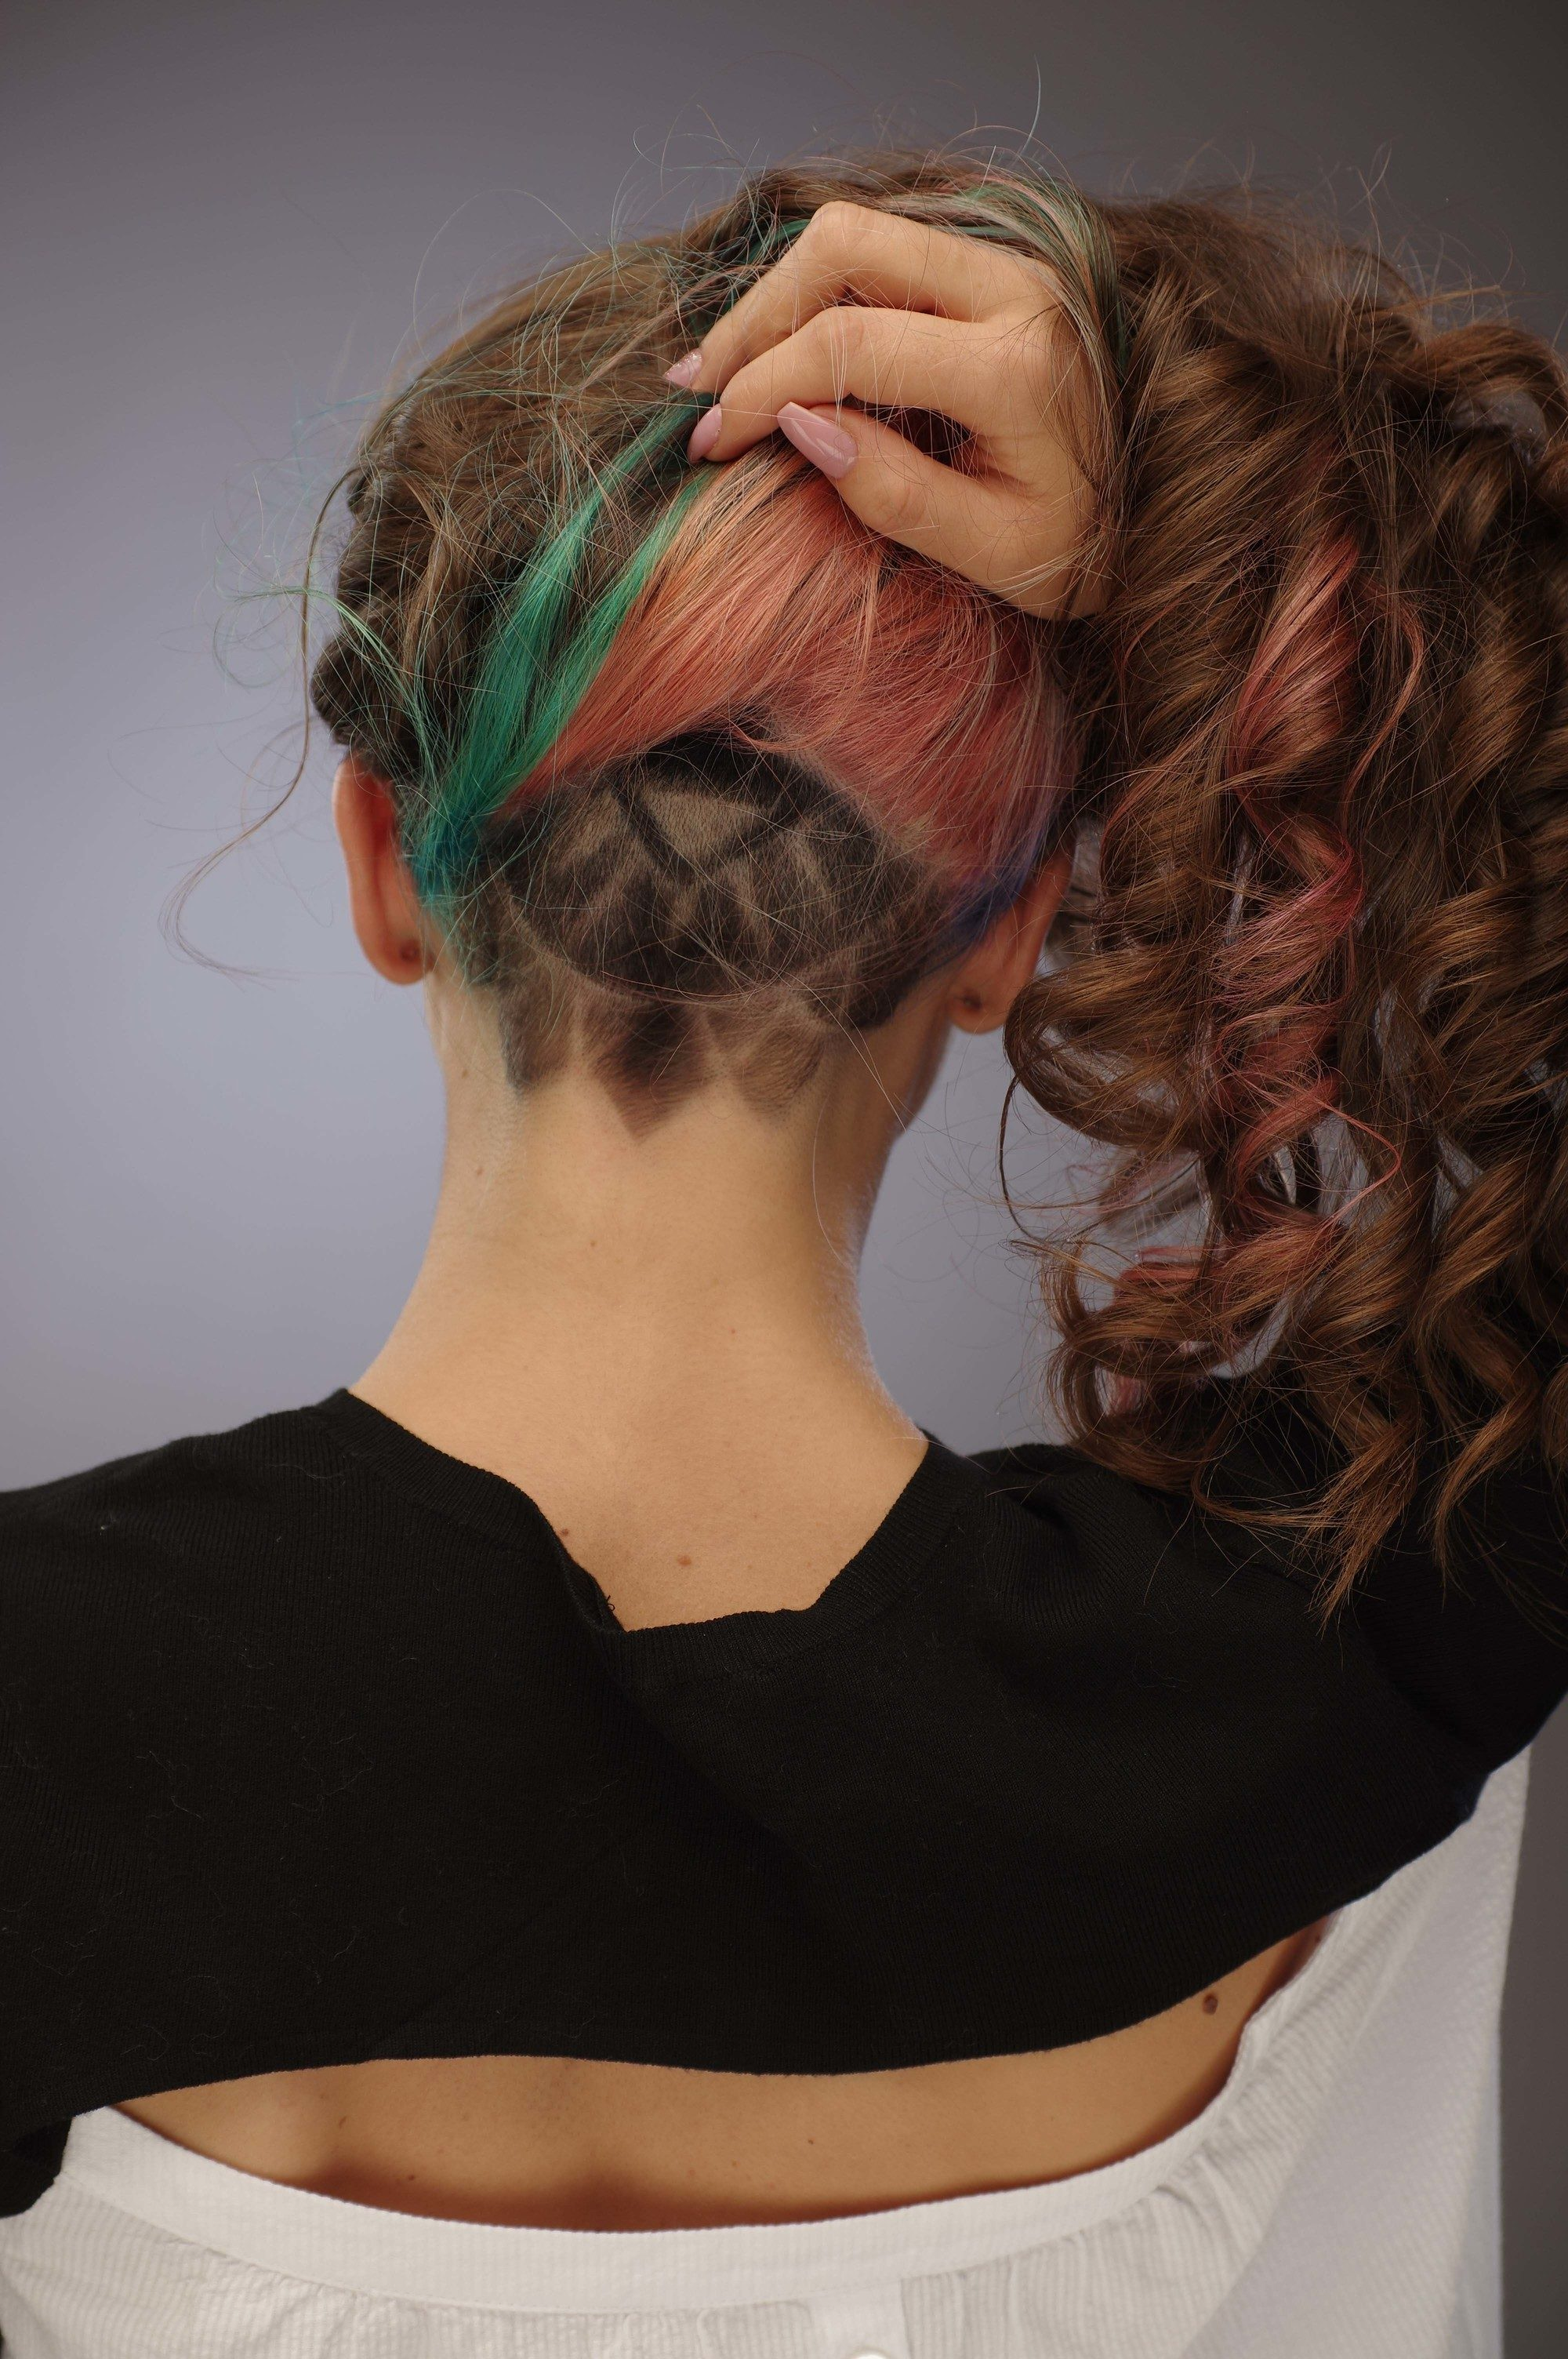 See more ideas about undercut long hair, undercut hairstyles, shaved hair designs. Undercut For Women The Ideal Way To Manage Thick And Long Hair